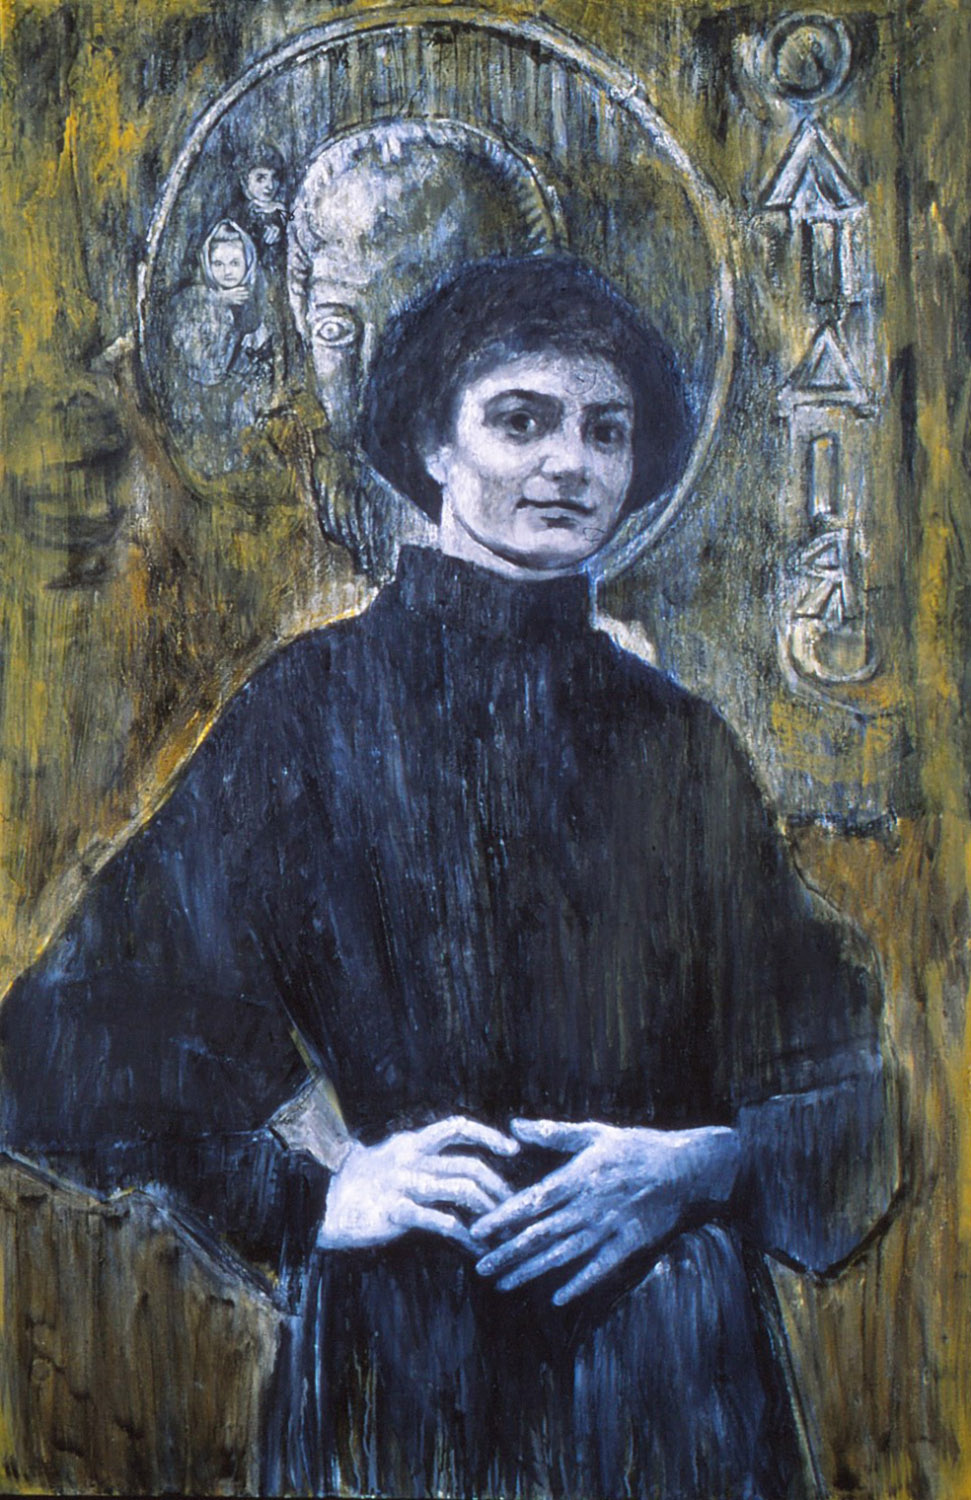 5dp(0) - My Story - oil, wax, resins on canvas, 74x47 in., 1995.jpg